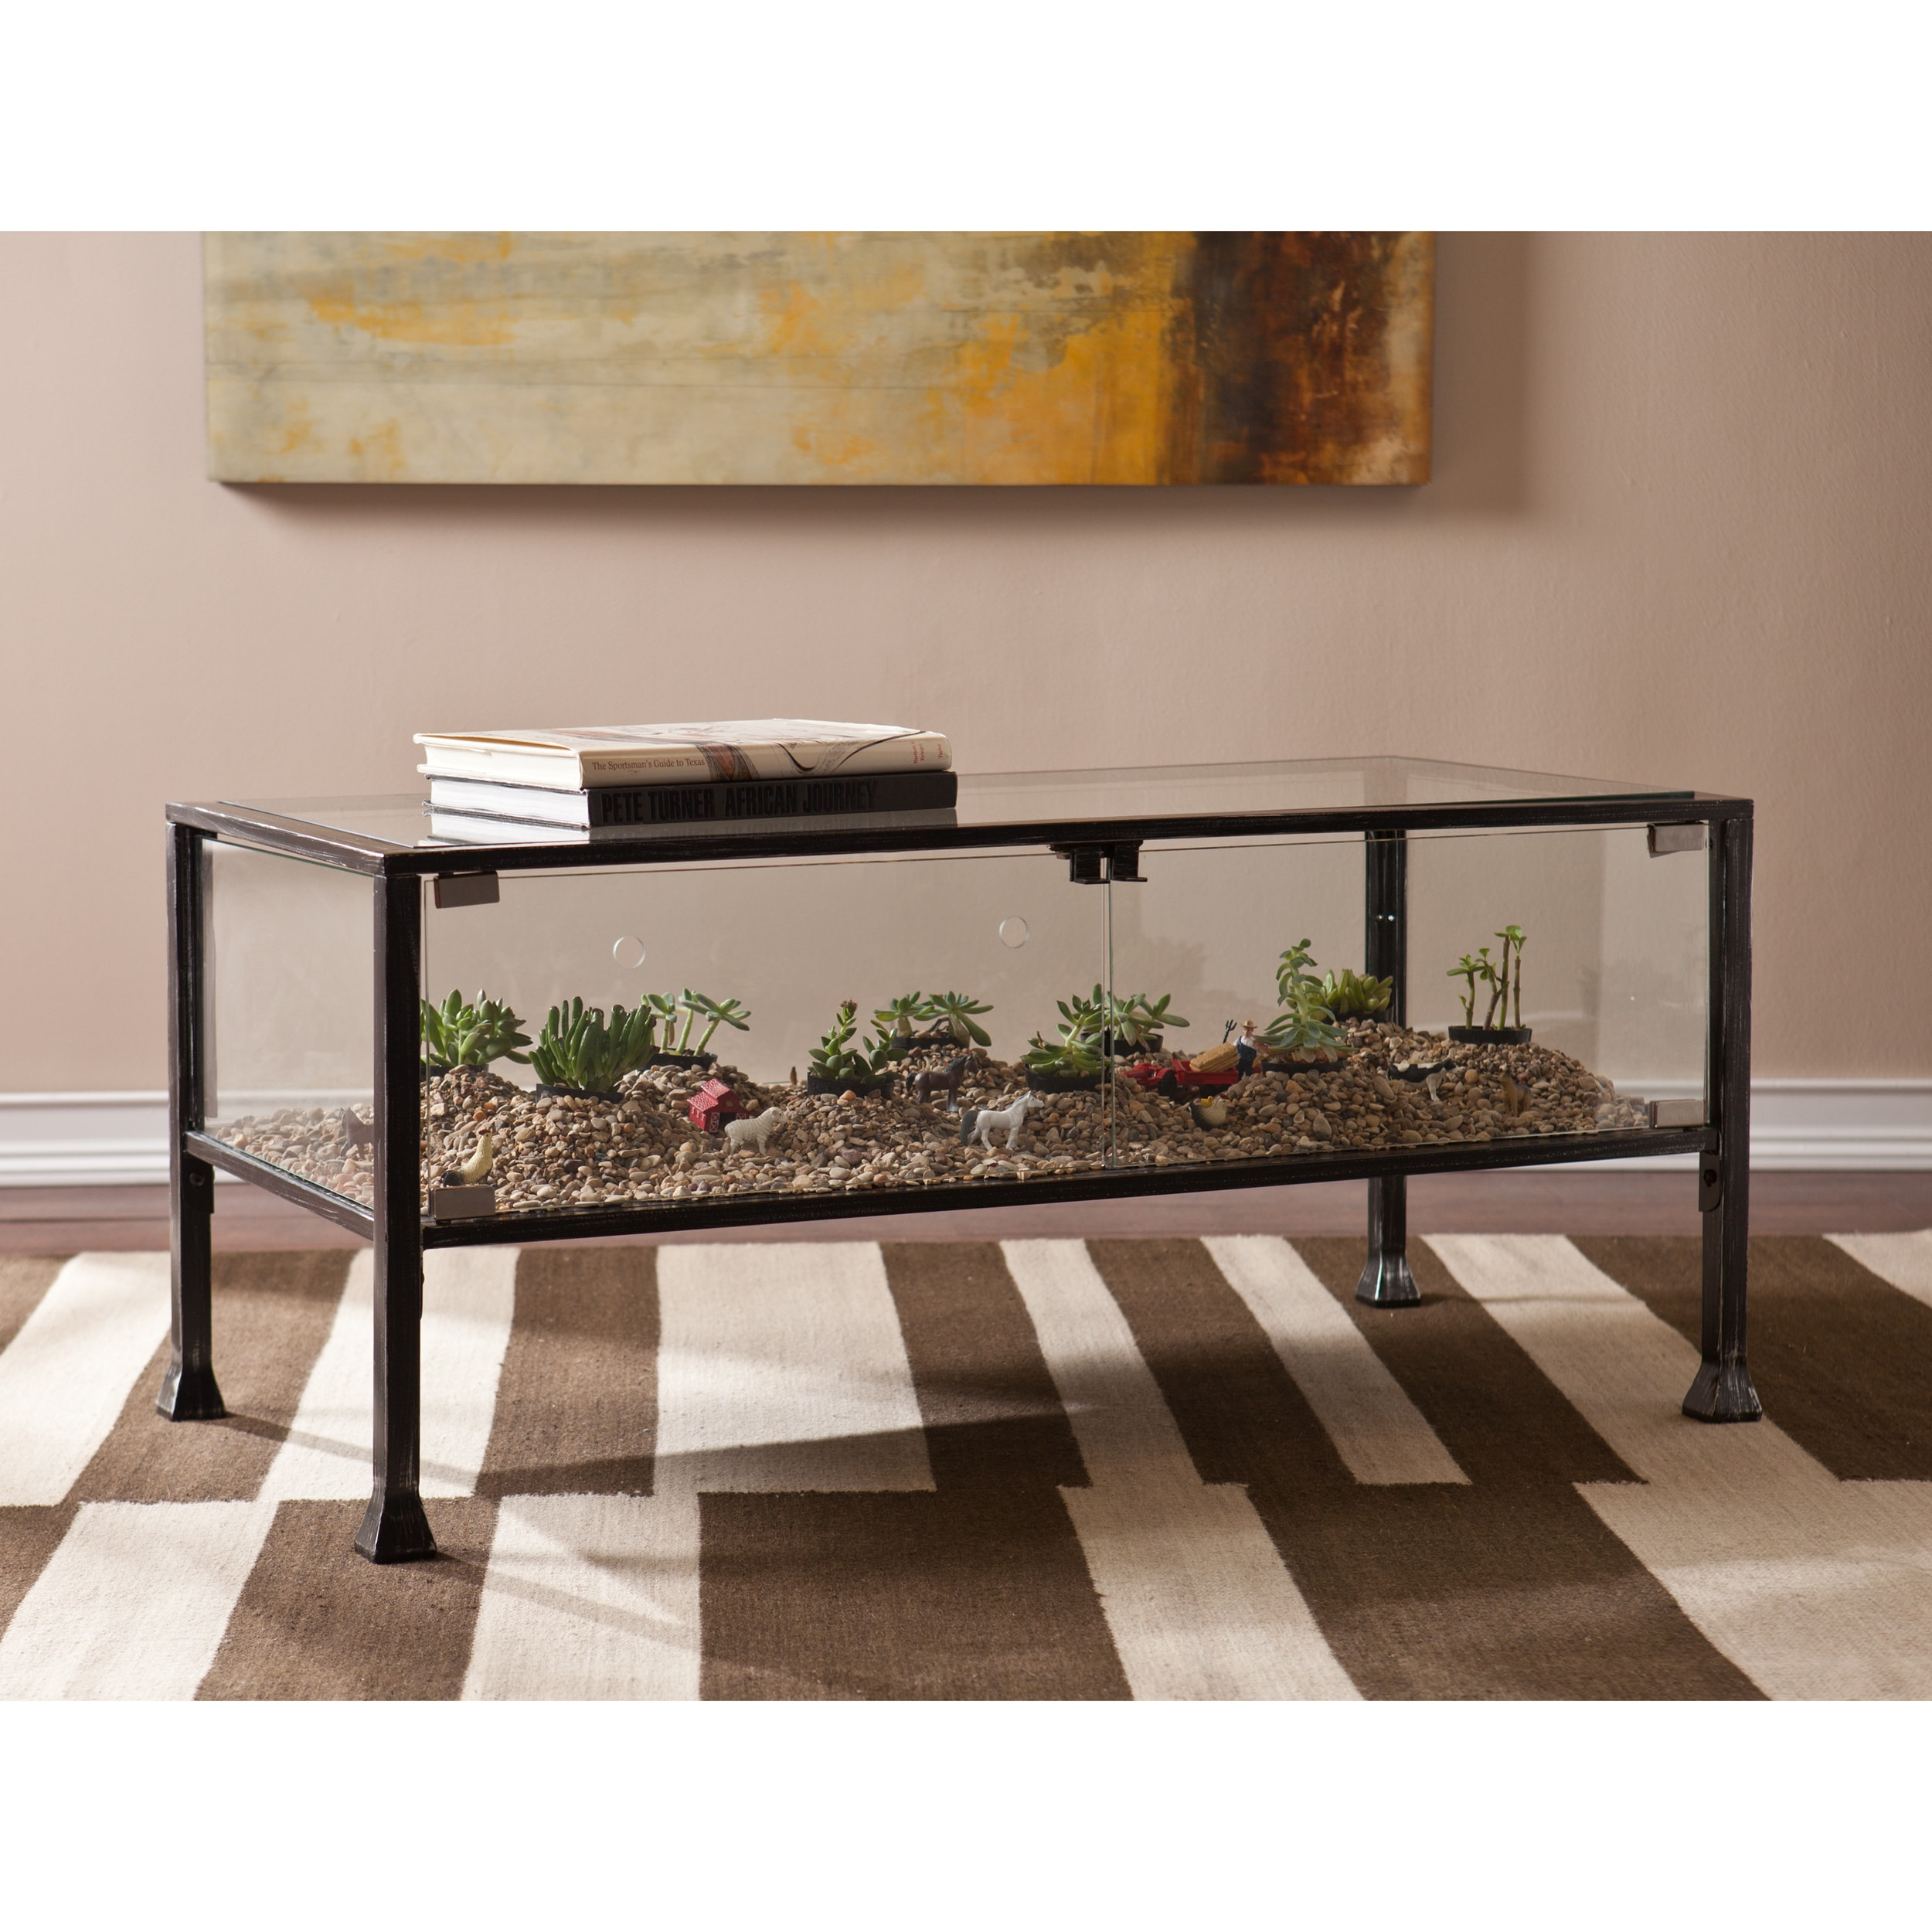 Brass Display Coffee Table: Shop Porch & Den RiNo Brighton Display/ Terrarium Coffee